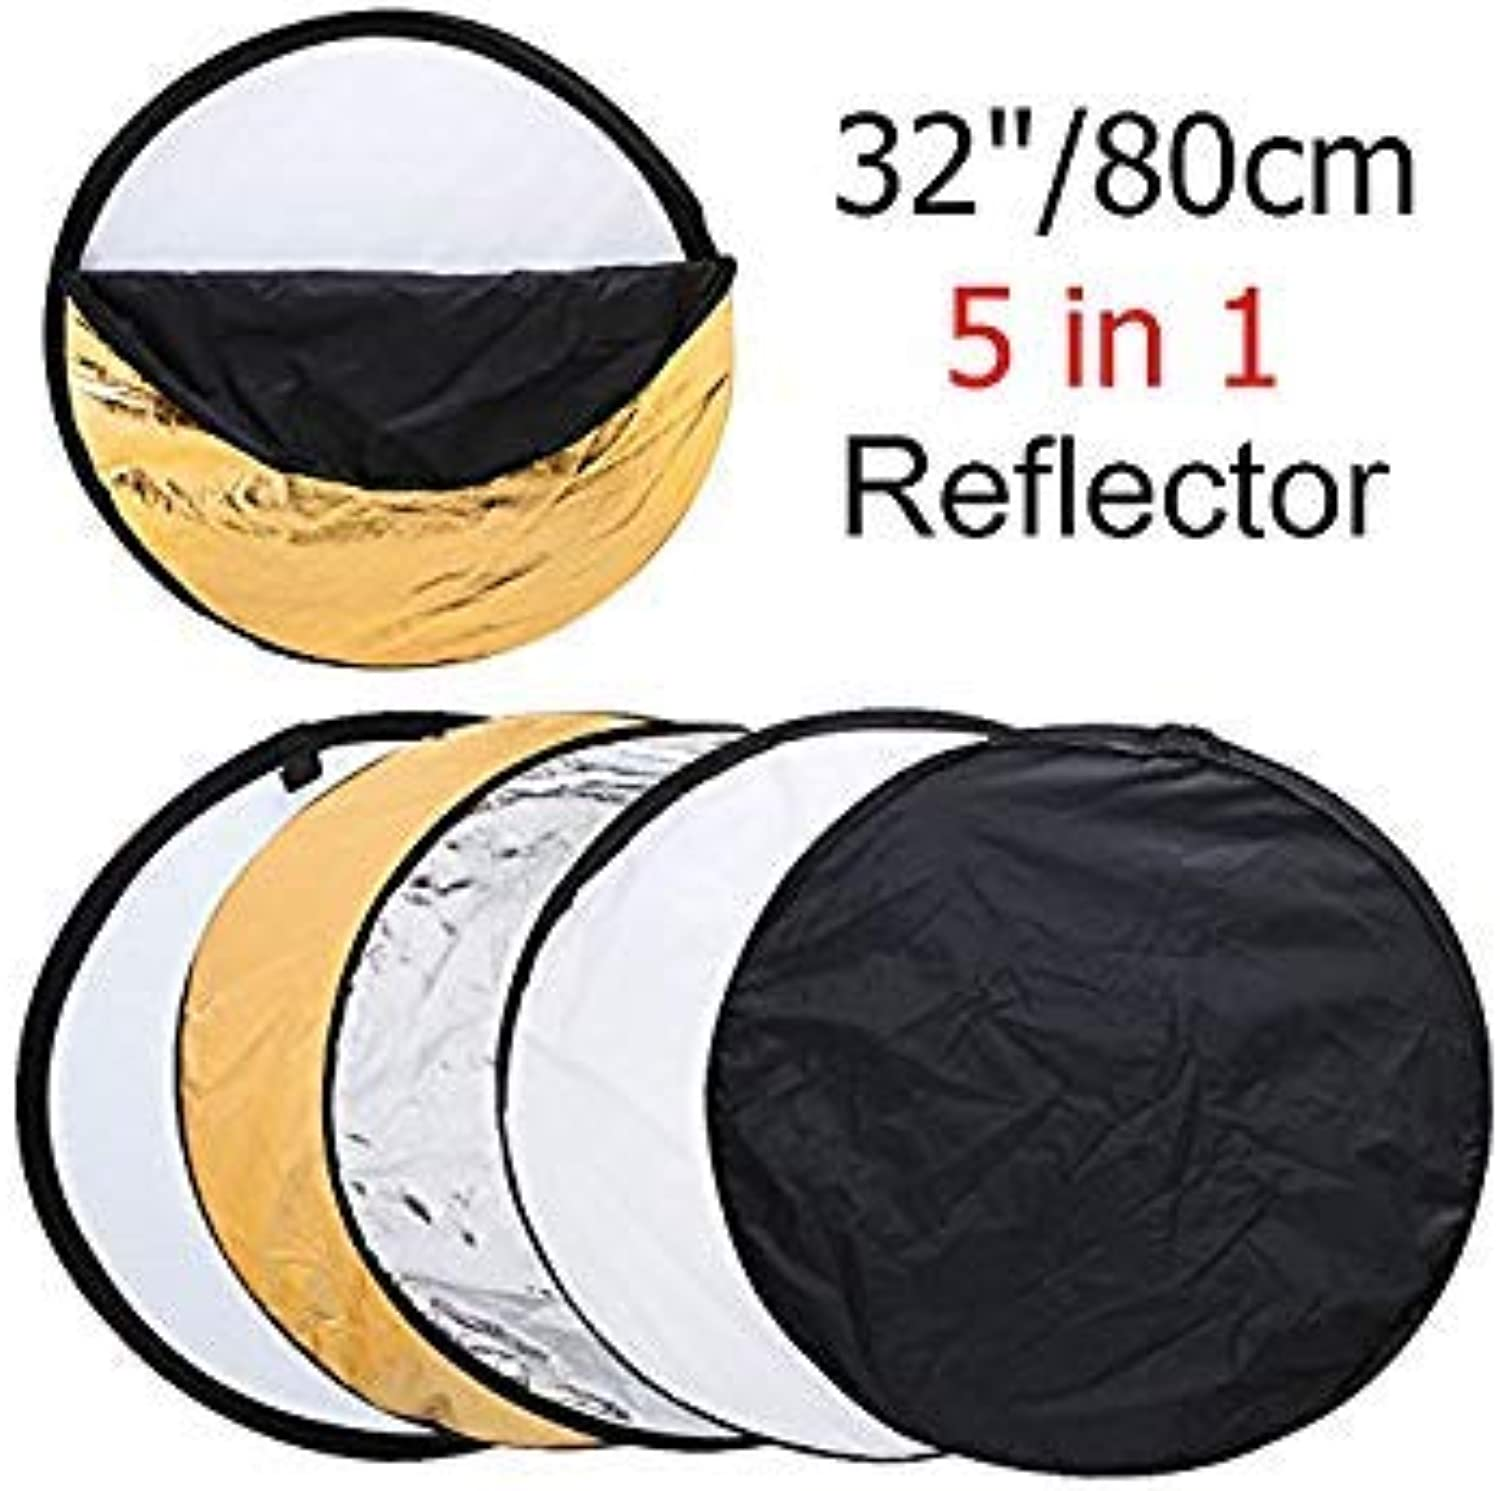 32  80cm 5 in 1 Round Photography Photo Reflector Portable Collapsible Light Round Reflector with Zipped Round Carrying Bag